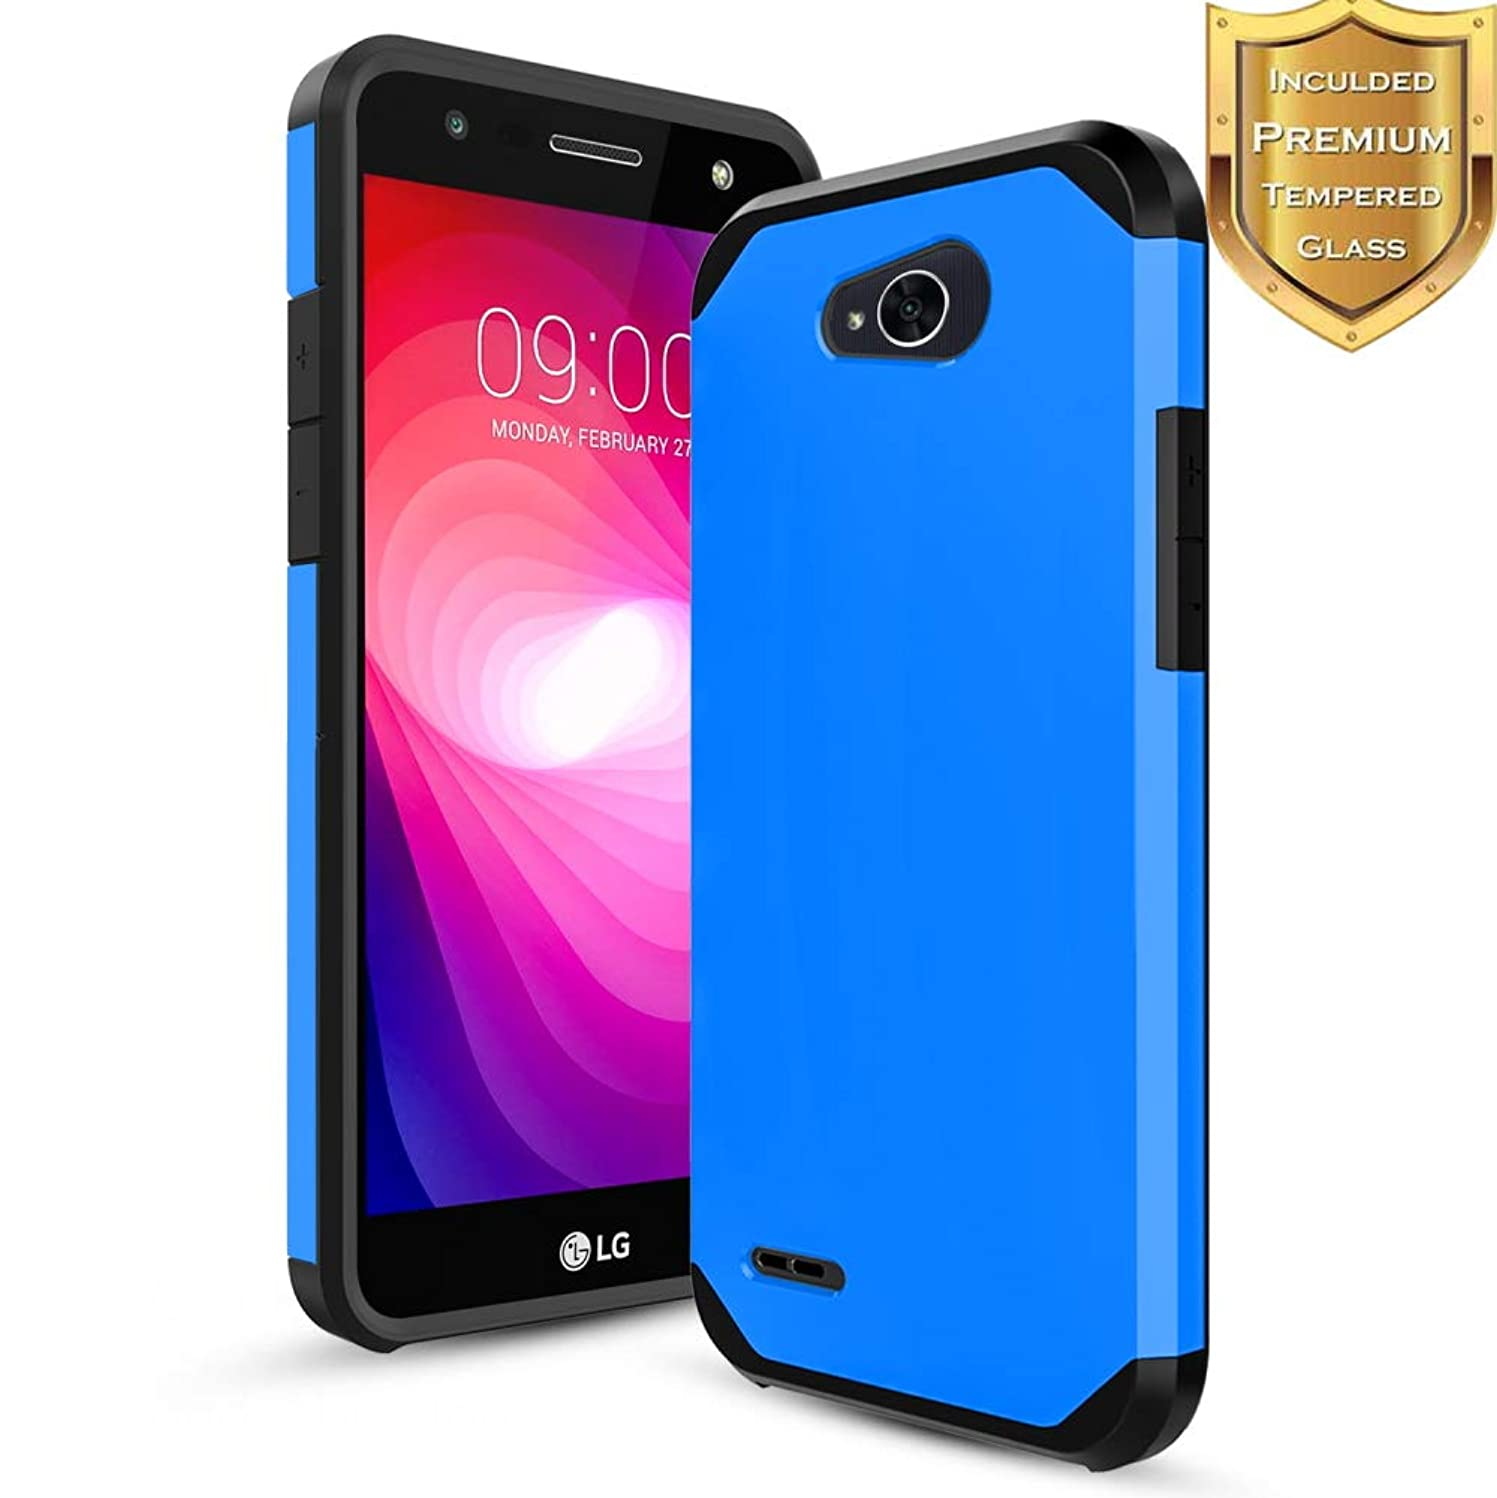 Samsung Galaxy J7 2018 Case,J7 Refine Case,J7 Star,J7 V 2nd Gen,J7 Aura,J7 Crown Case W Tempered Glass Screen Protector,Heavy Duty Hybrid Hard Shockproof Slim Fit Cover for Samsung J7 2018,Blue